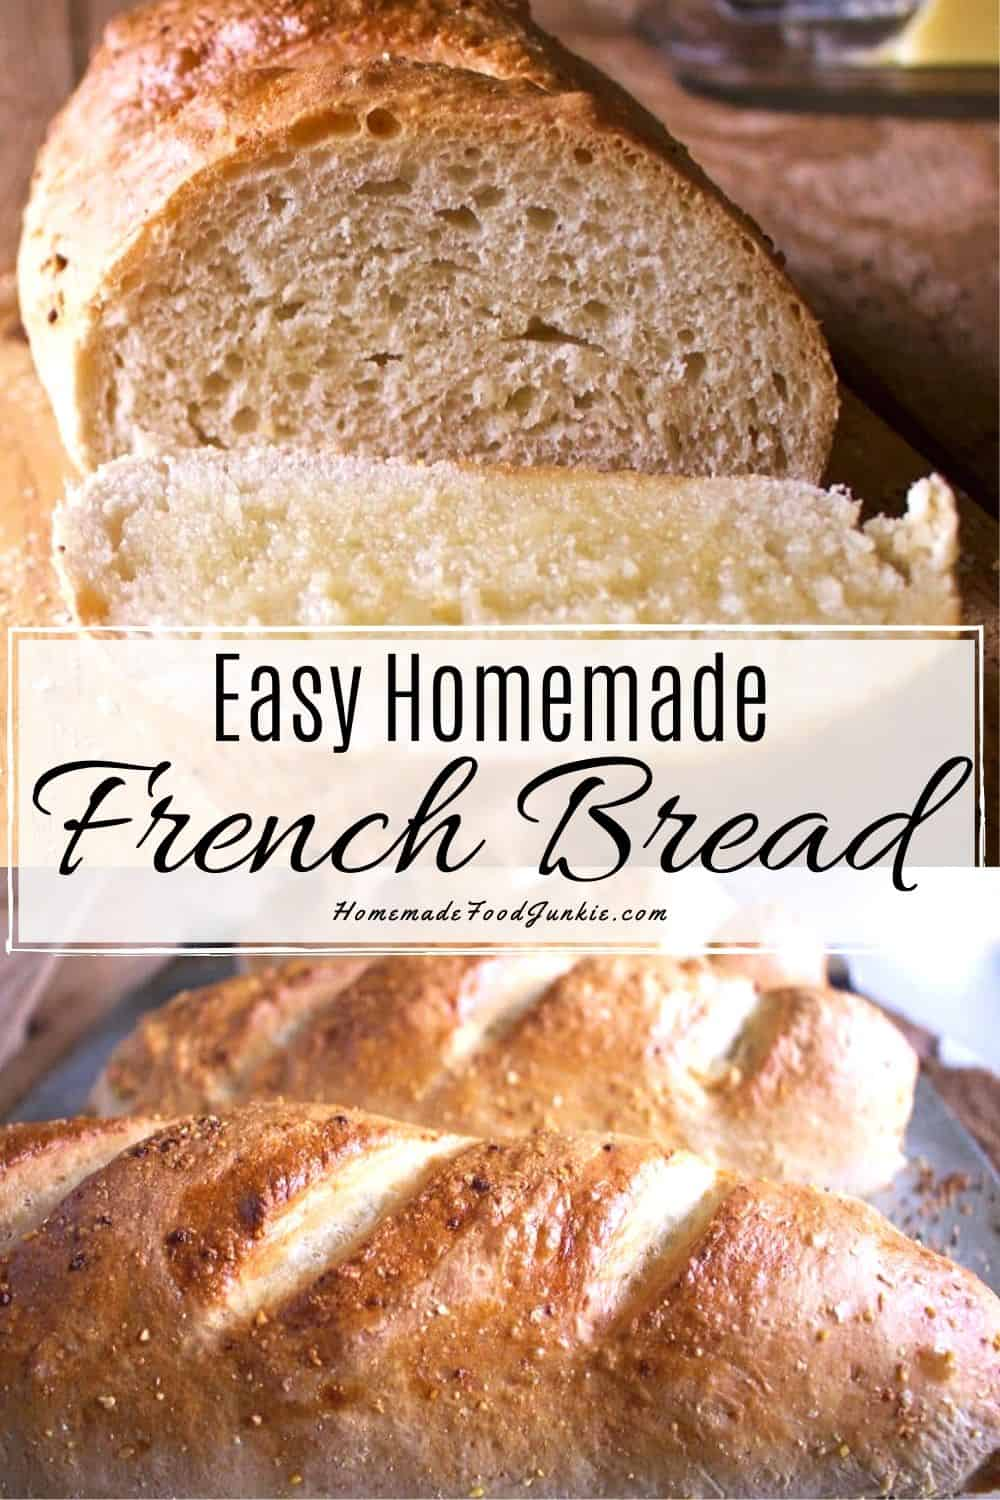 Easy Homemade French Bread-pin image